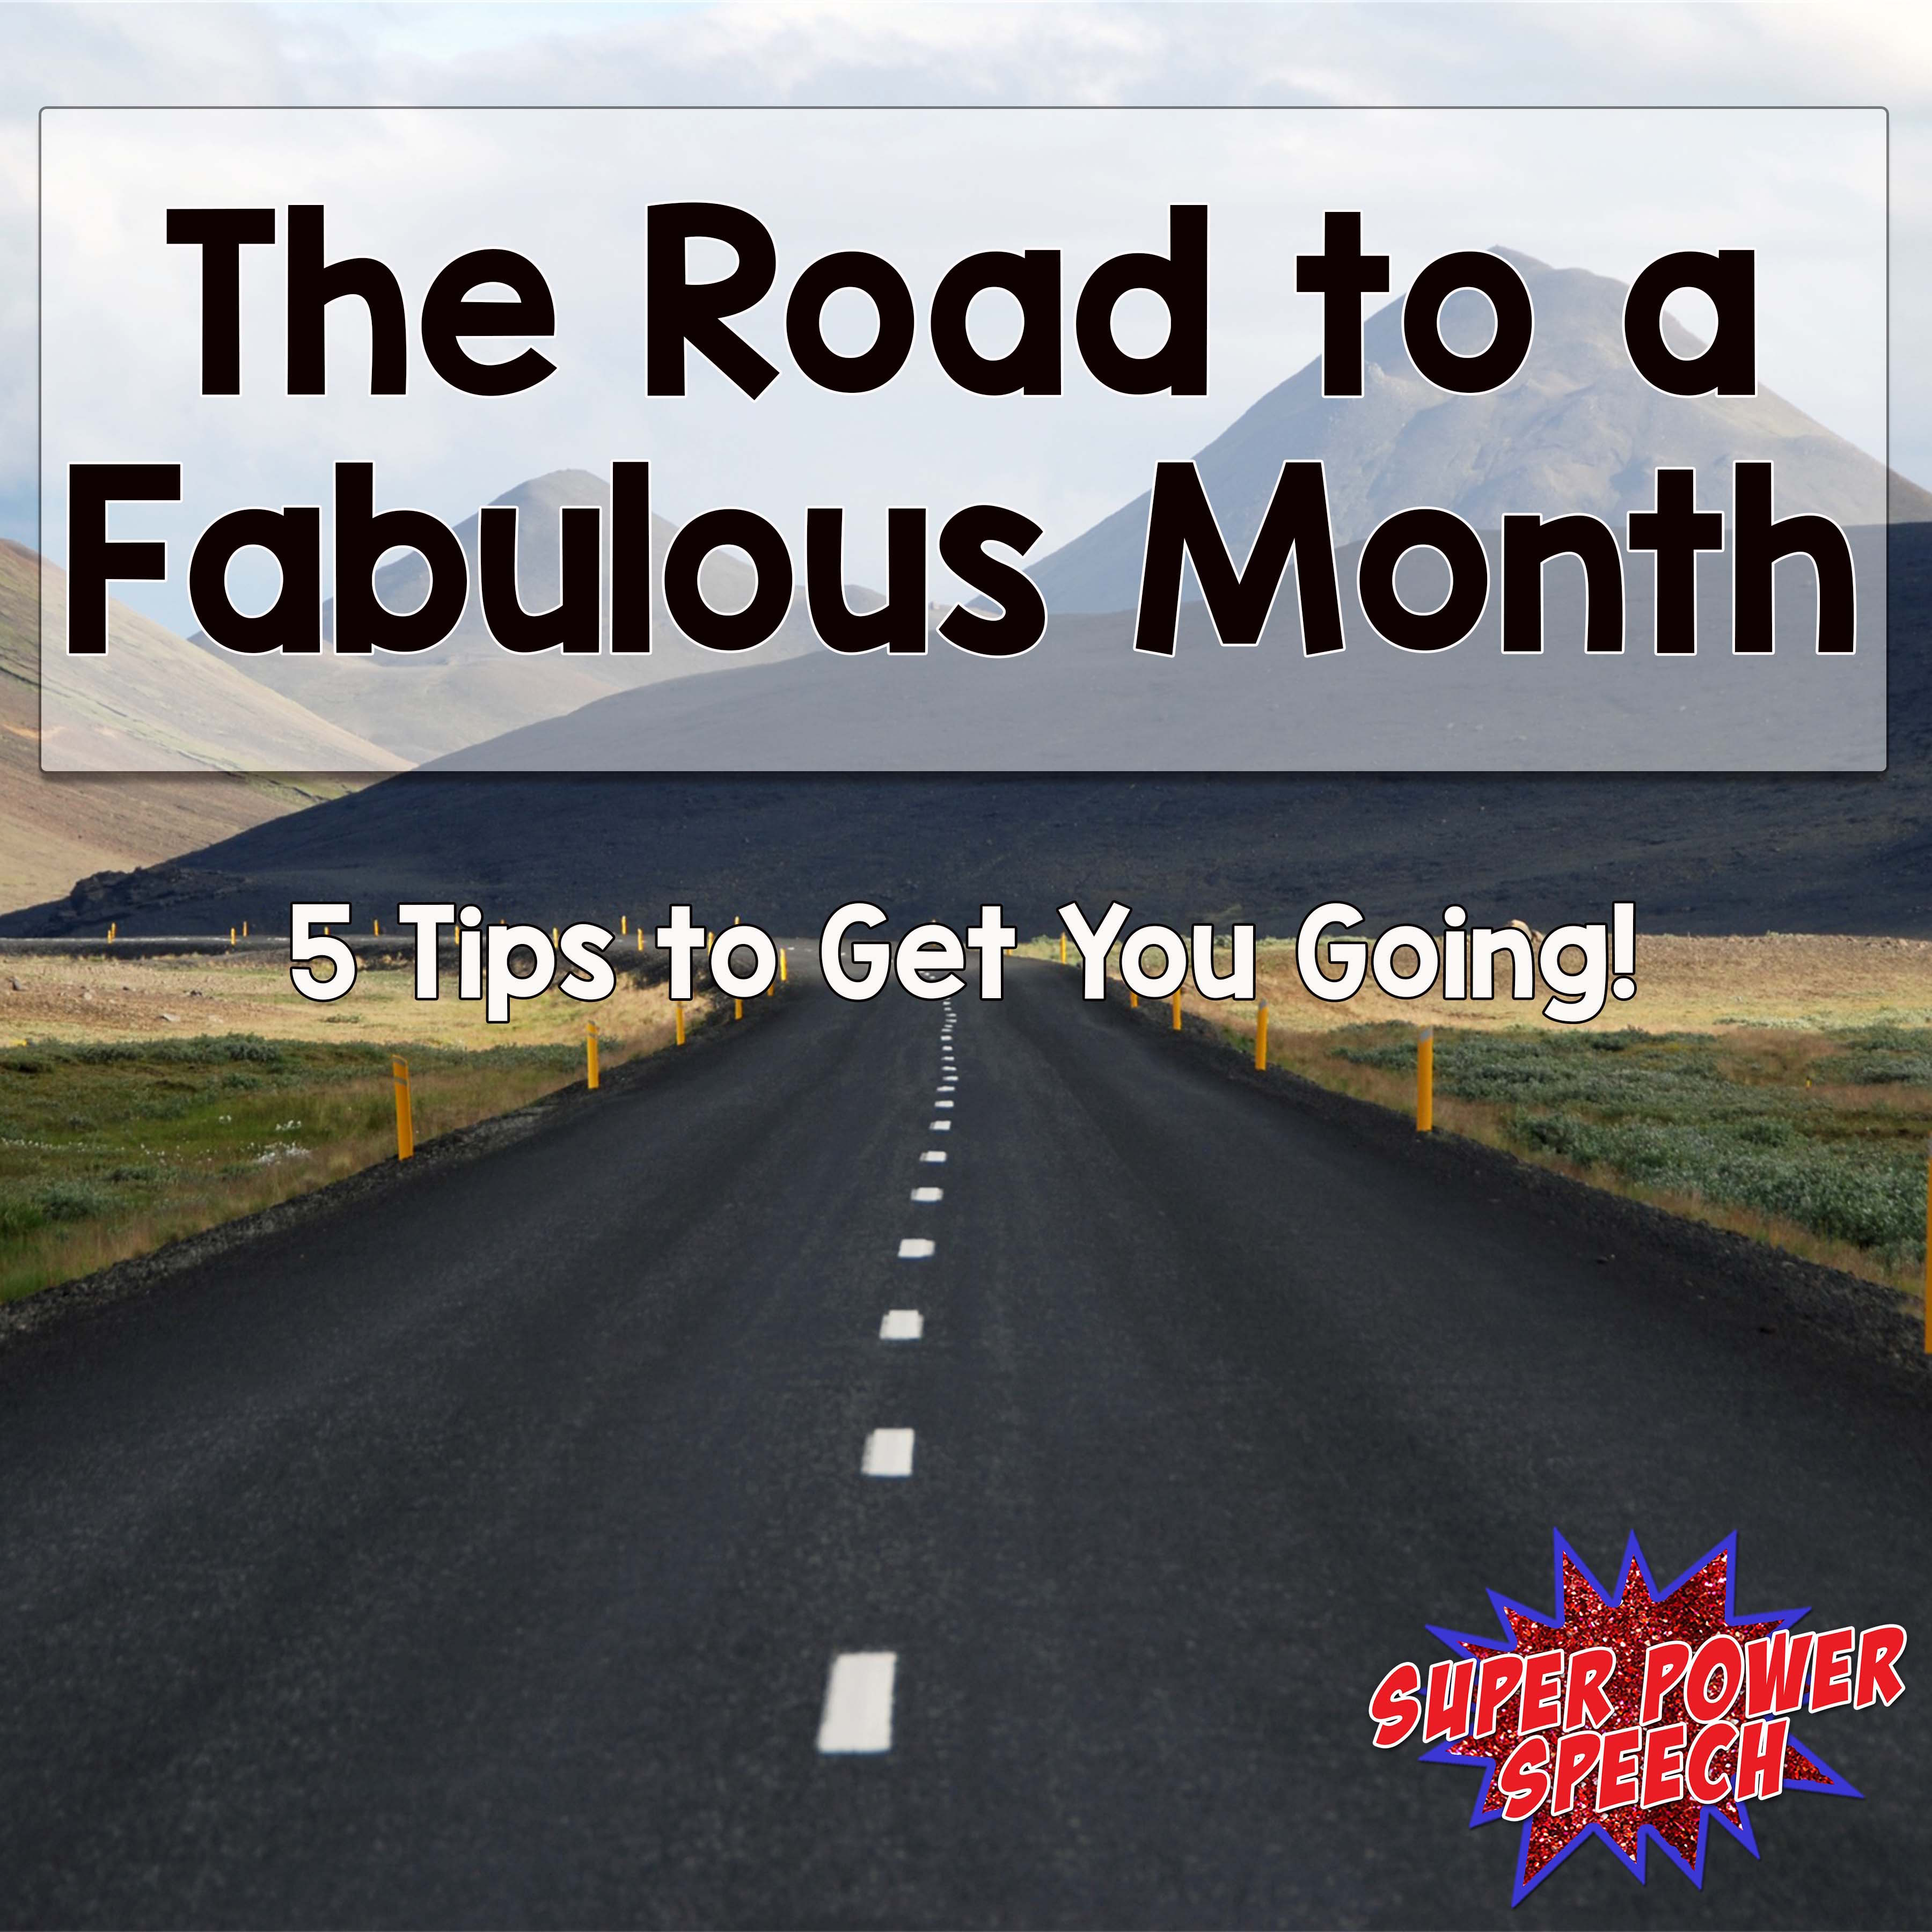 The Road to a Fabulous Month